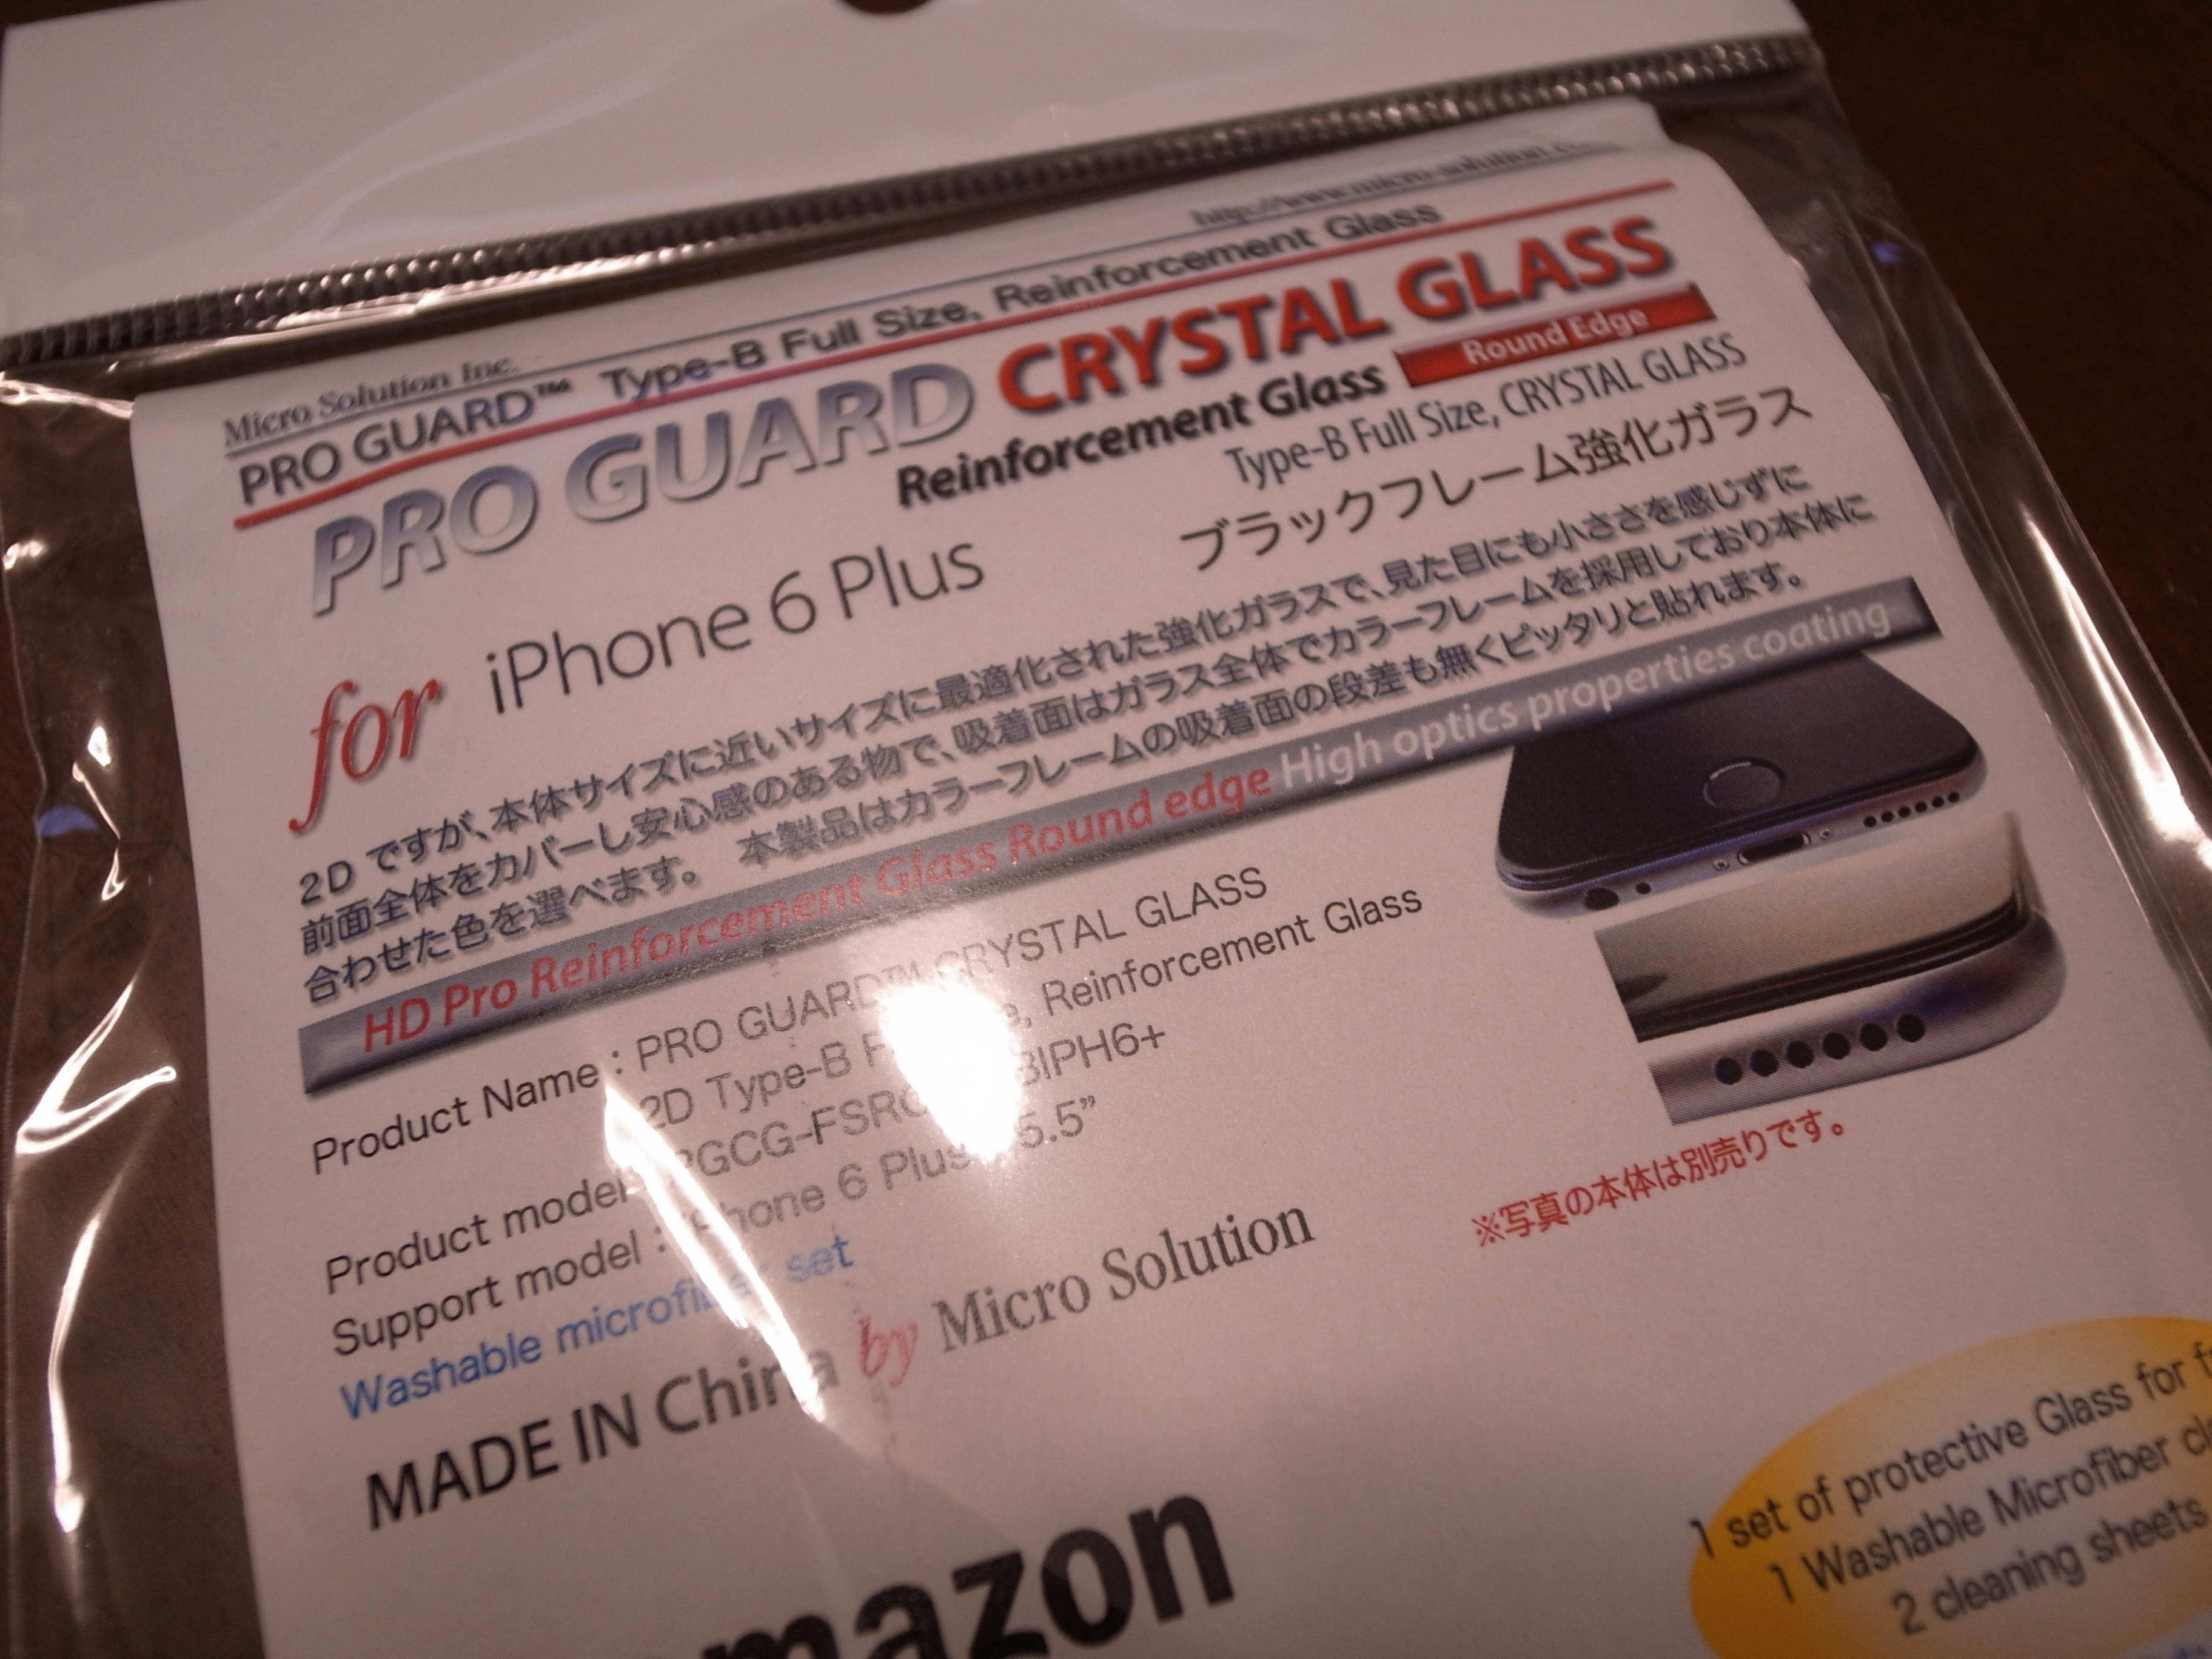 0860-201507_ProGuard Crystal Glass 01